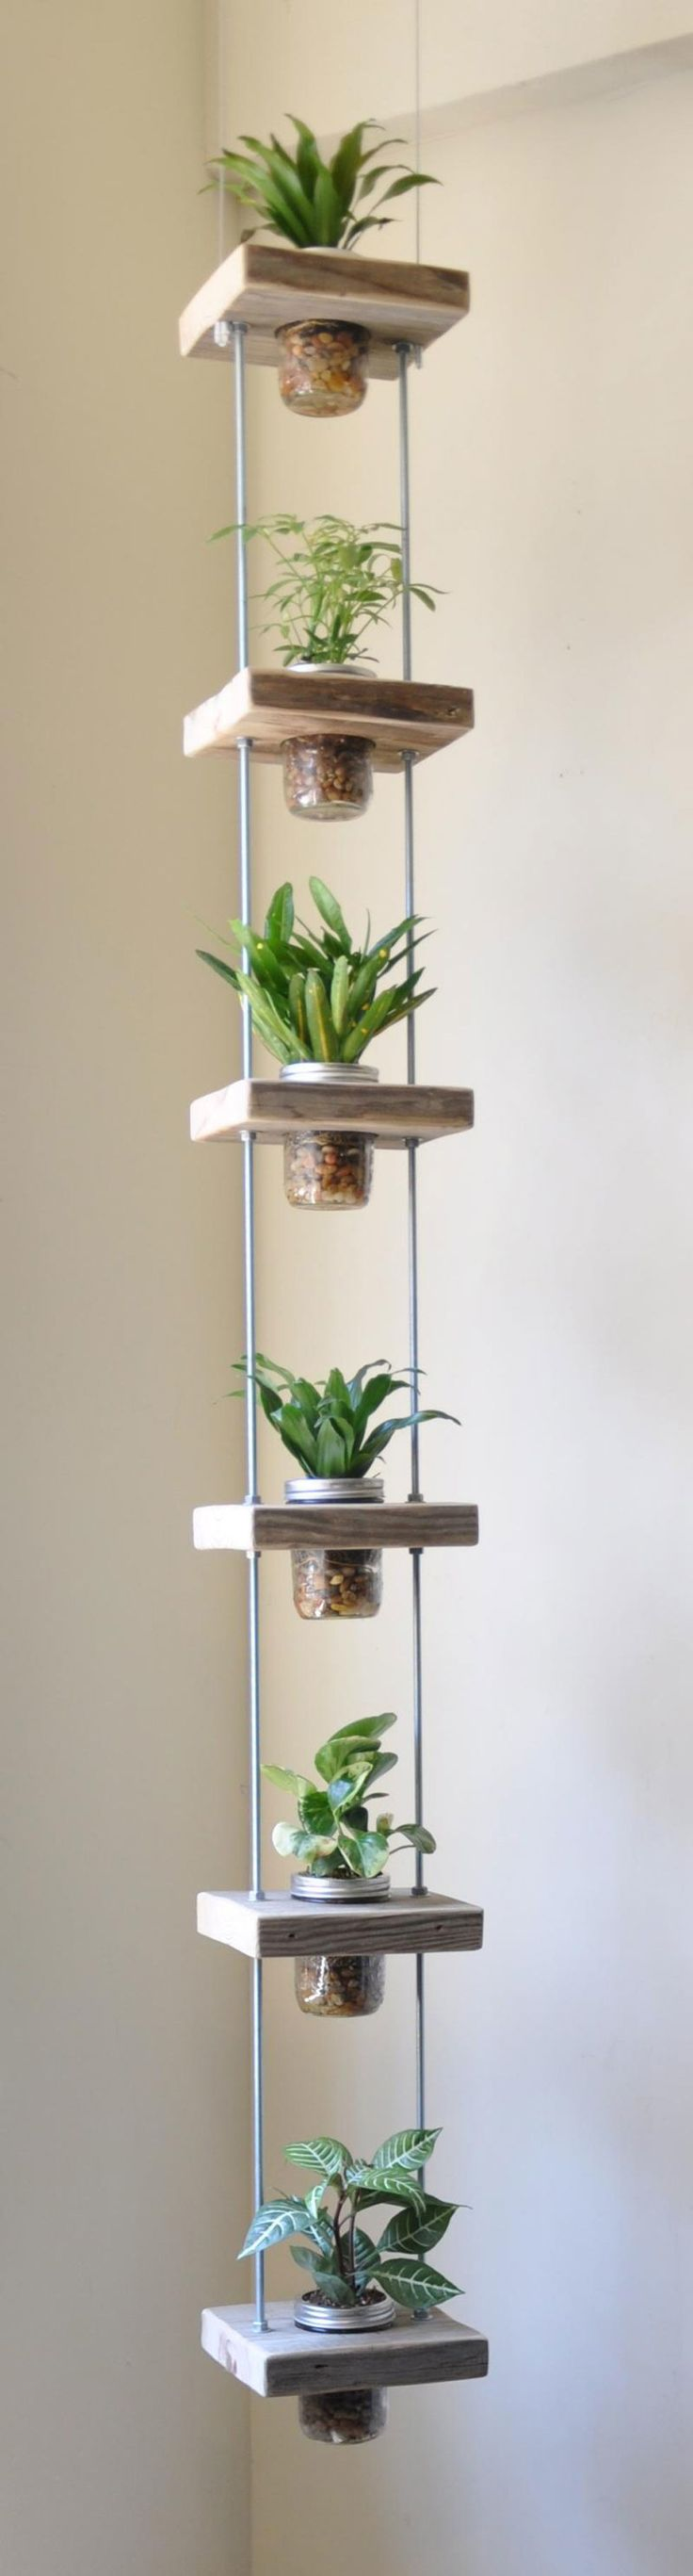 Here, Mason jars are suspended from wooden squares attached to two hanging metal cables. Pro tip: Make sure to line the bottom of your Mason jars with small rocks or pebbles—since there are no drainage holes, this will allow the roots more room to breathe. Get the tutorial at Constant Contact.